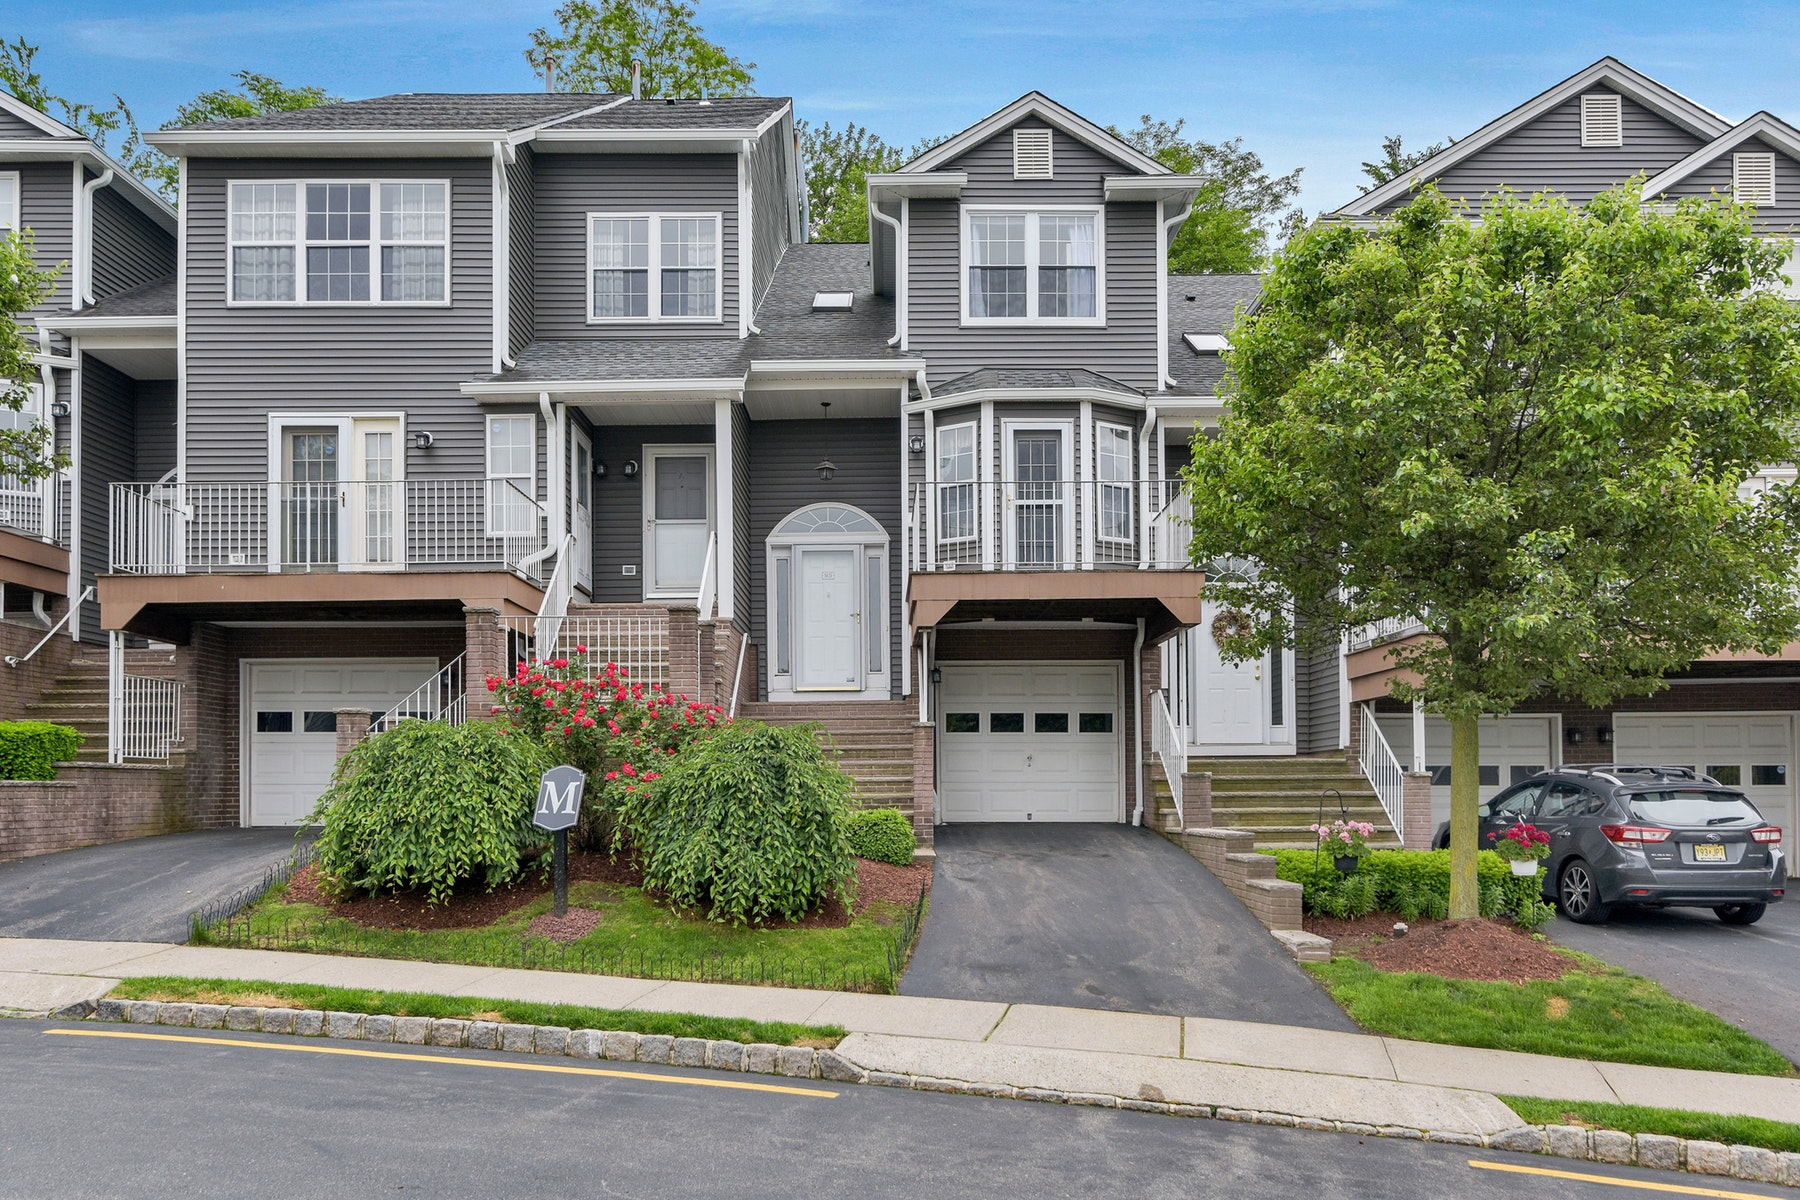 Condominiums for Sale at Amazing Opportunity 20 S Midland Ave Kearny, New Jersey 07032 United States